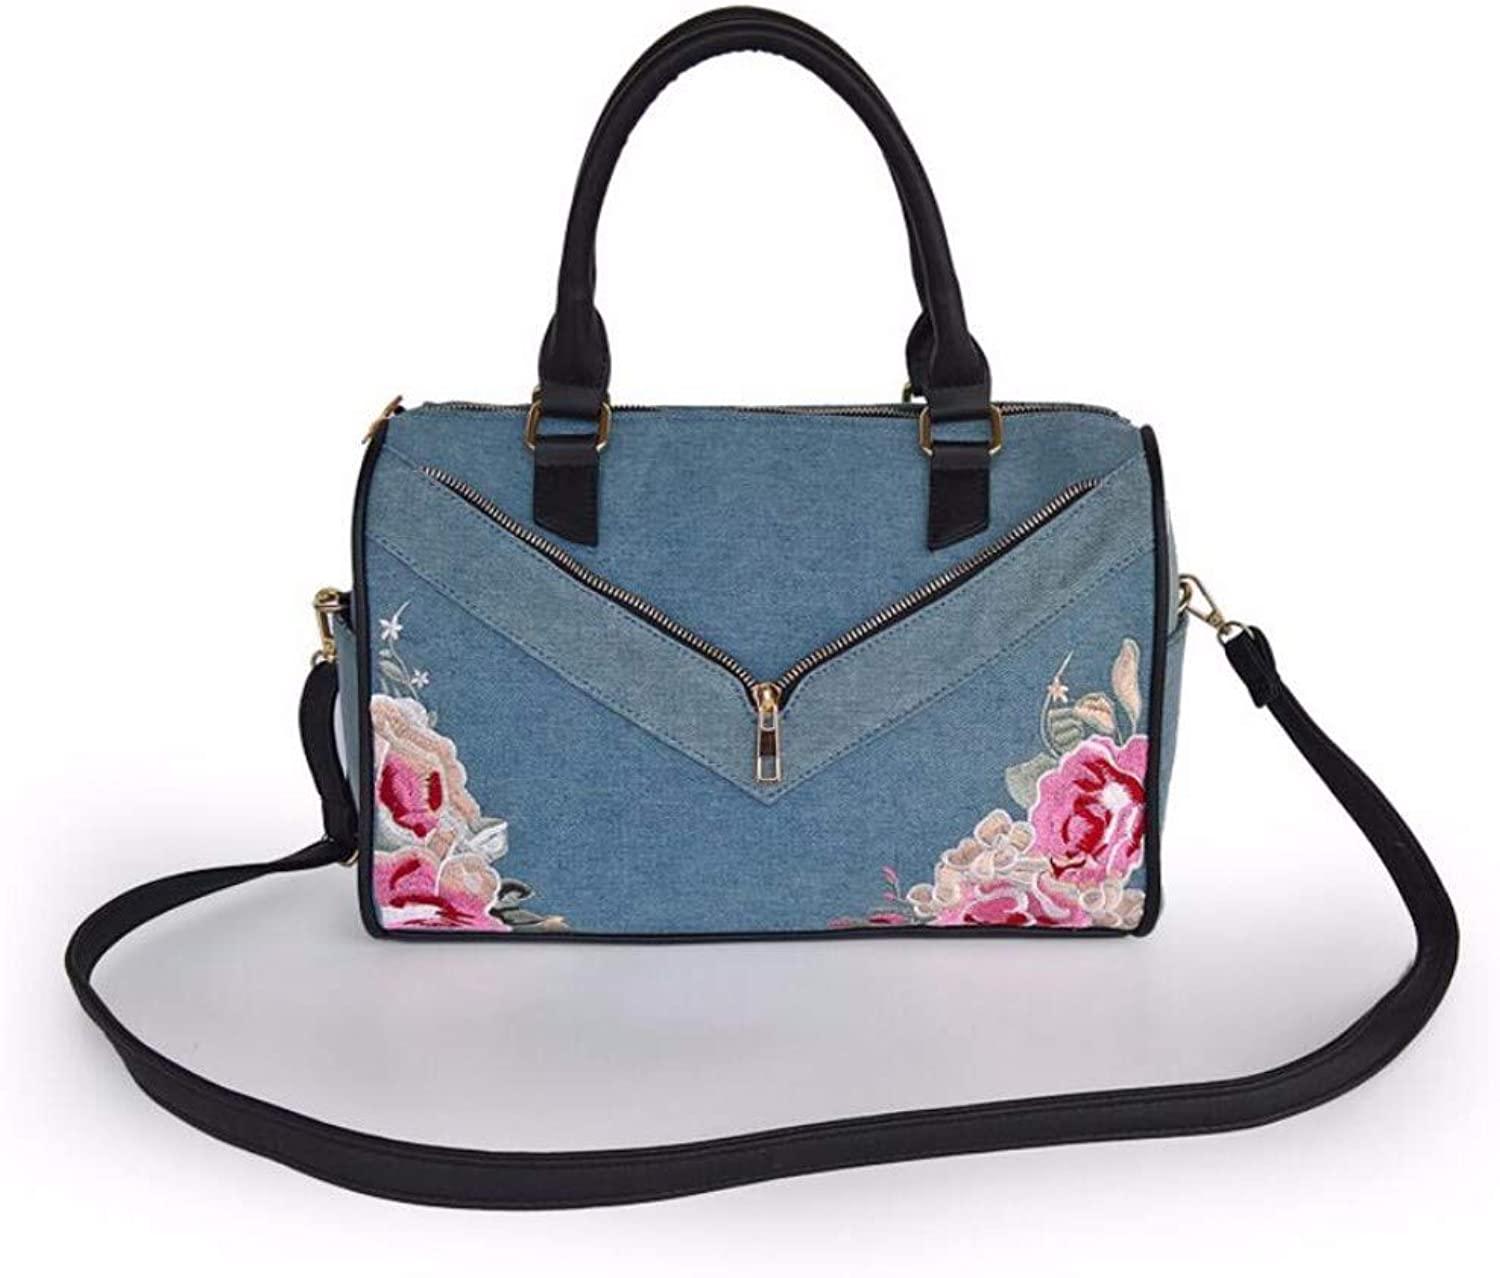 Jean Embroidered Pillow Bag Fashion Lady Bag Inclined Bag Handbag